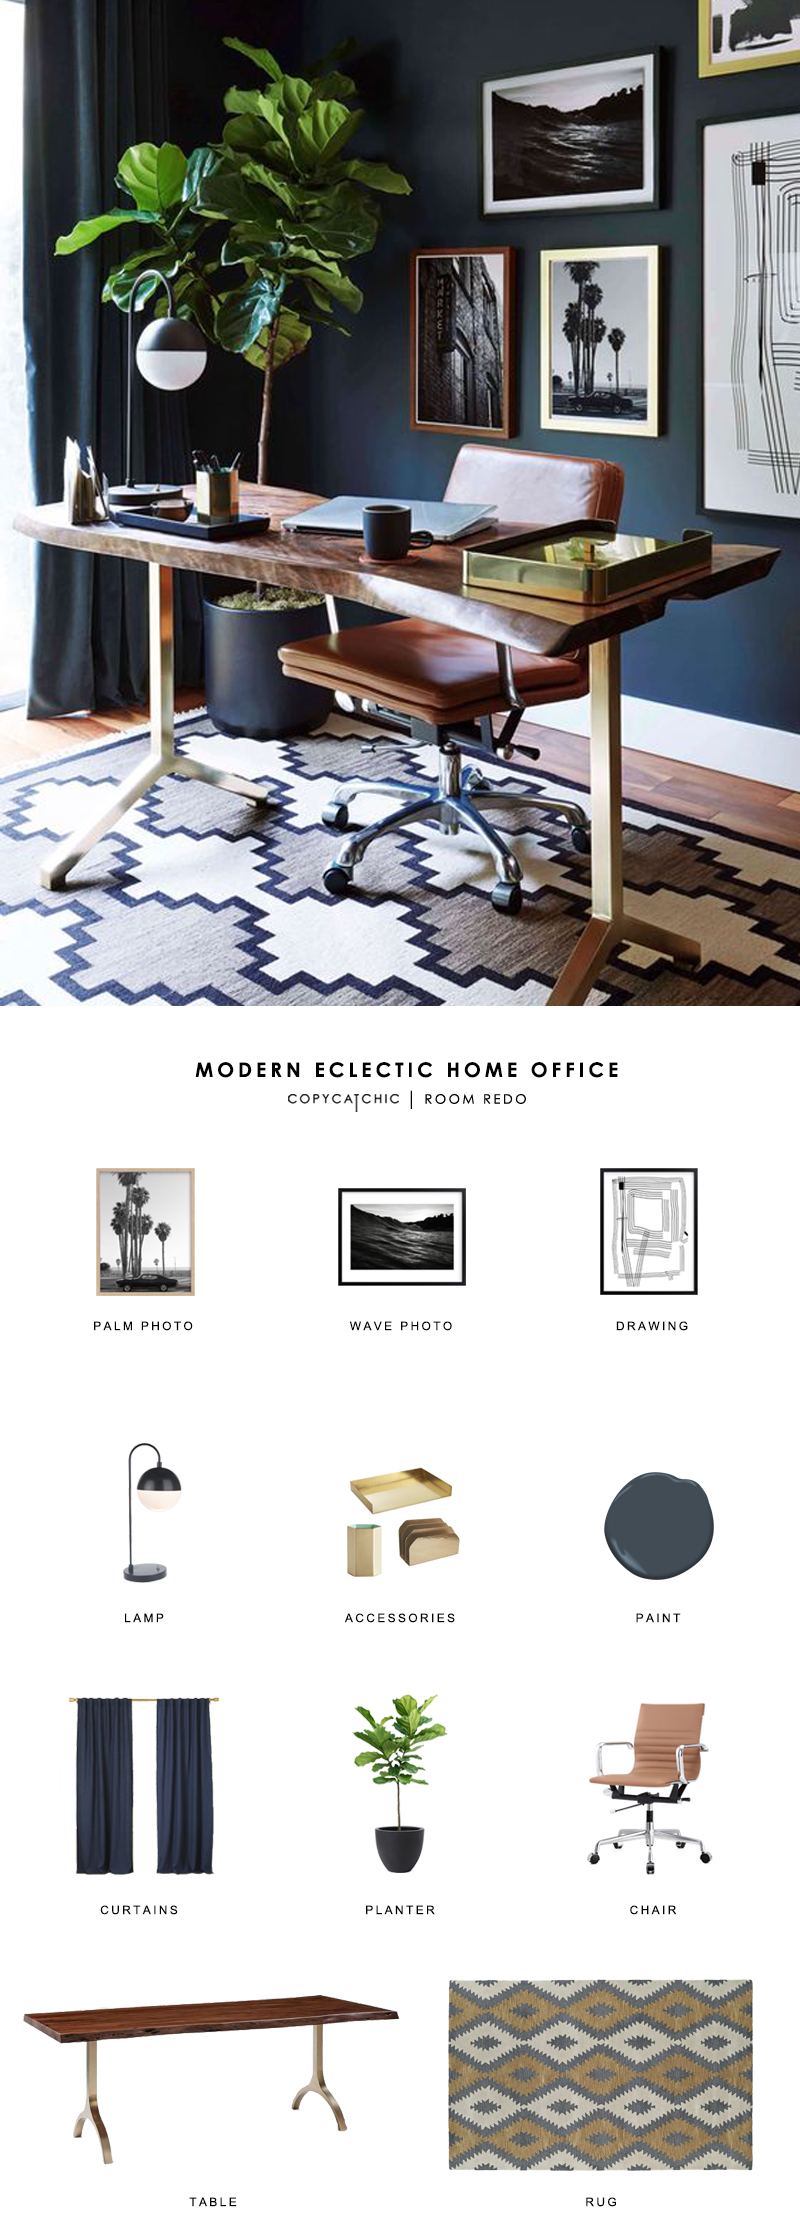 Copy Cat Chic Room Redo Modern Eclectic Home Office